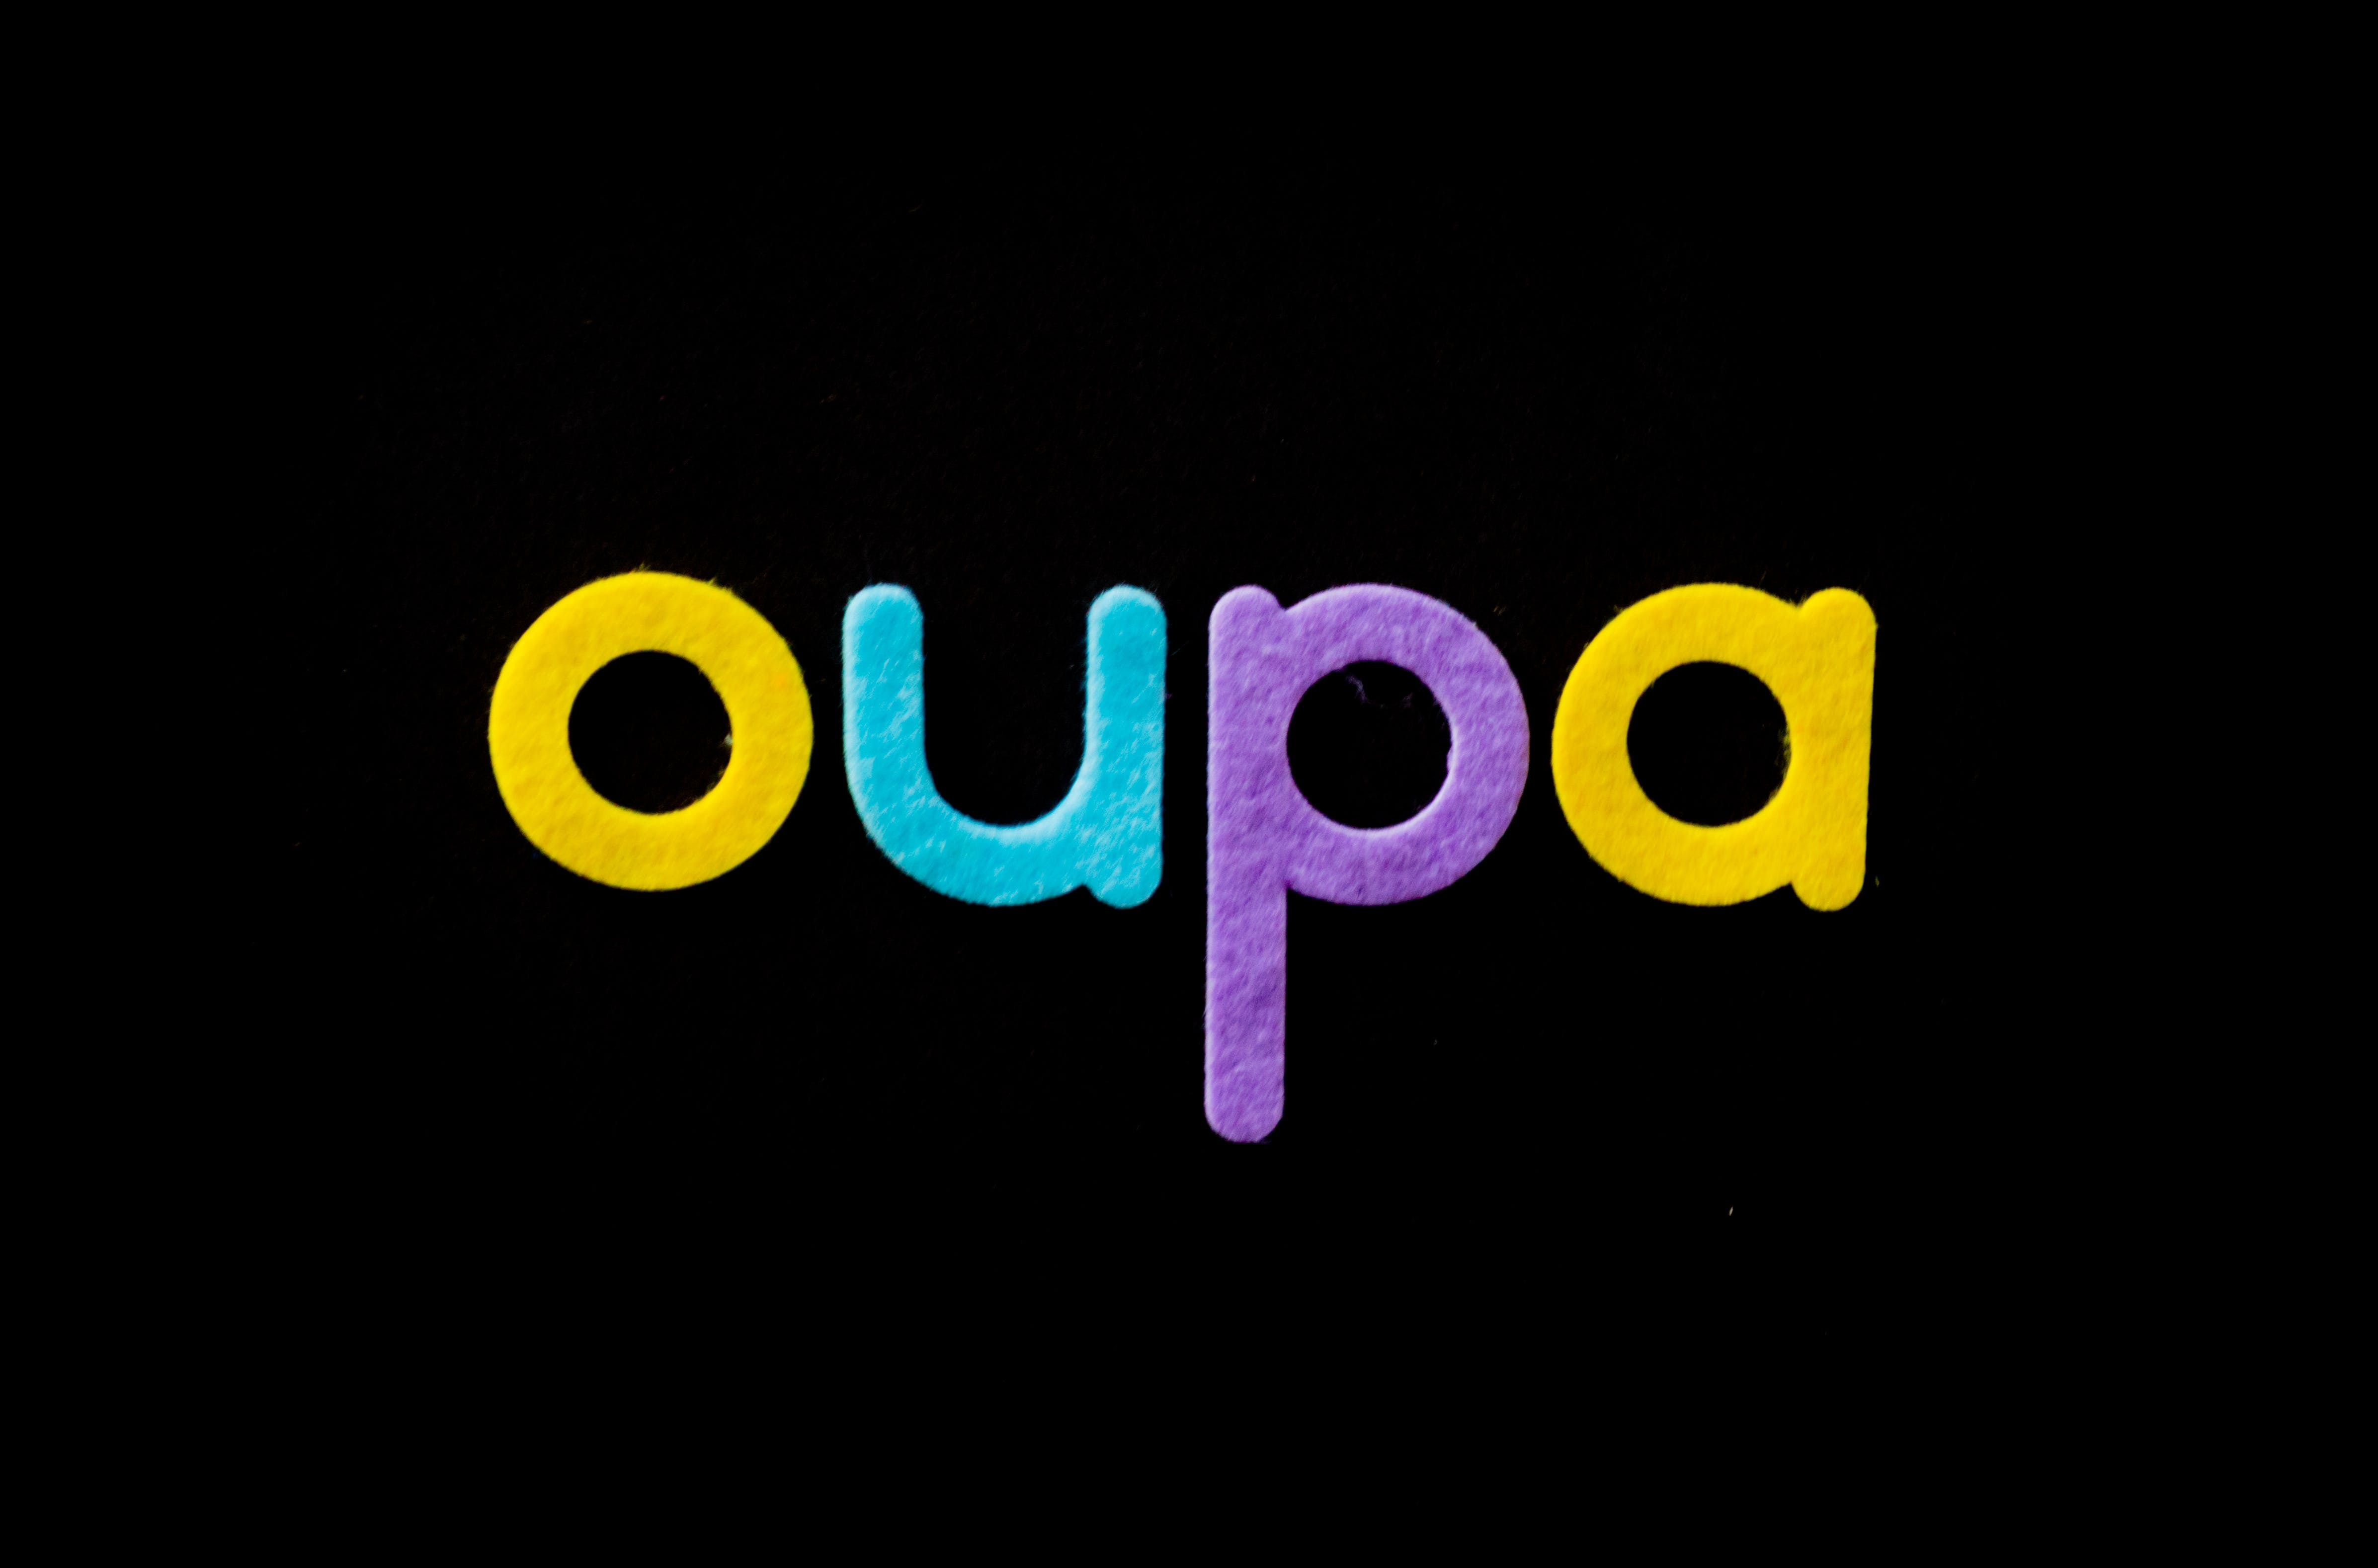 Black Background With Oupa Text Overlay